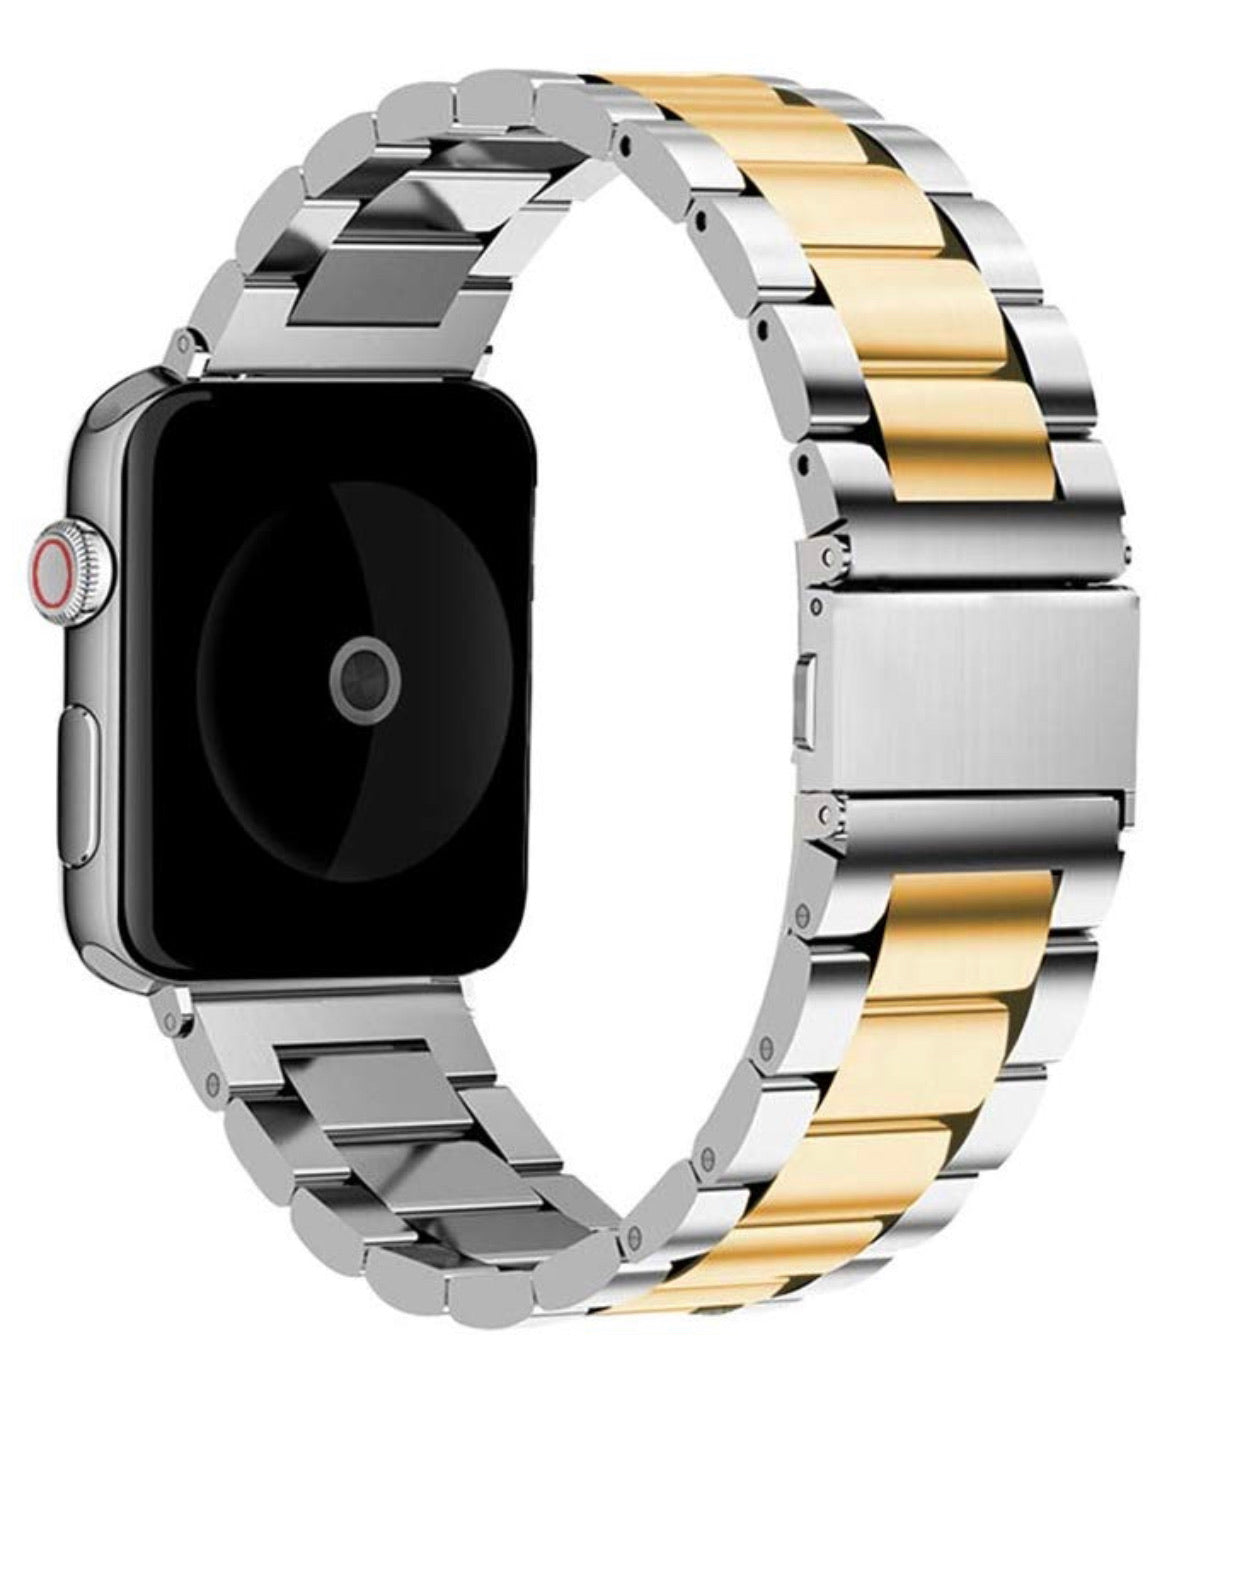 Lord Band x Two-Tone for Apple Watch